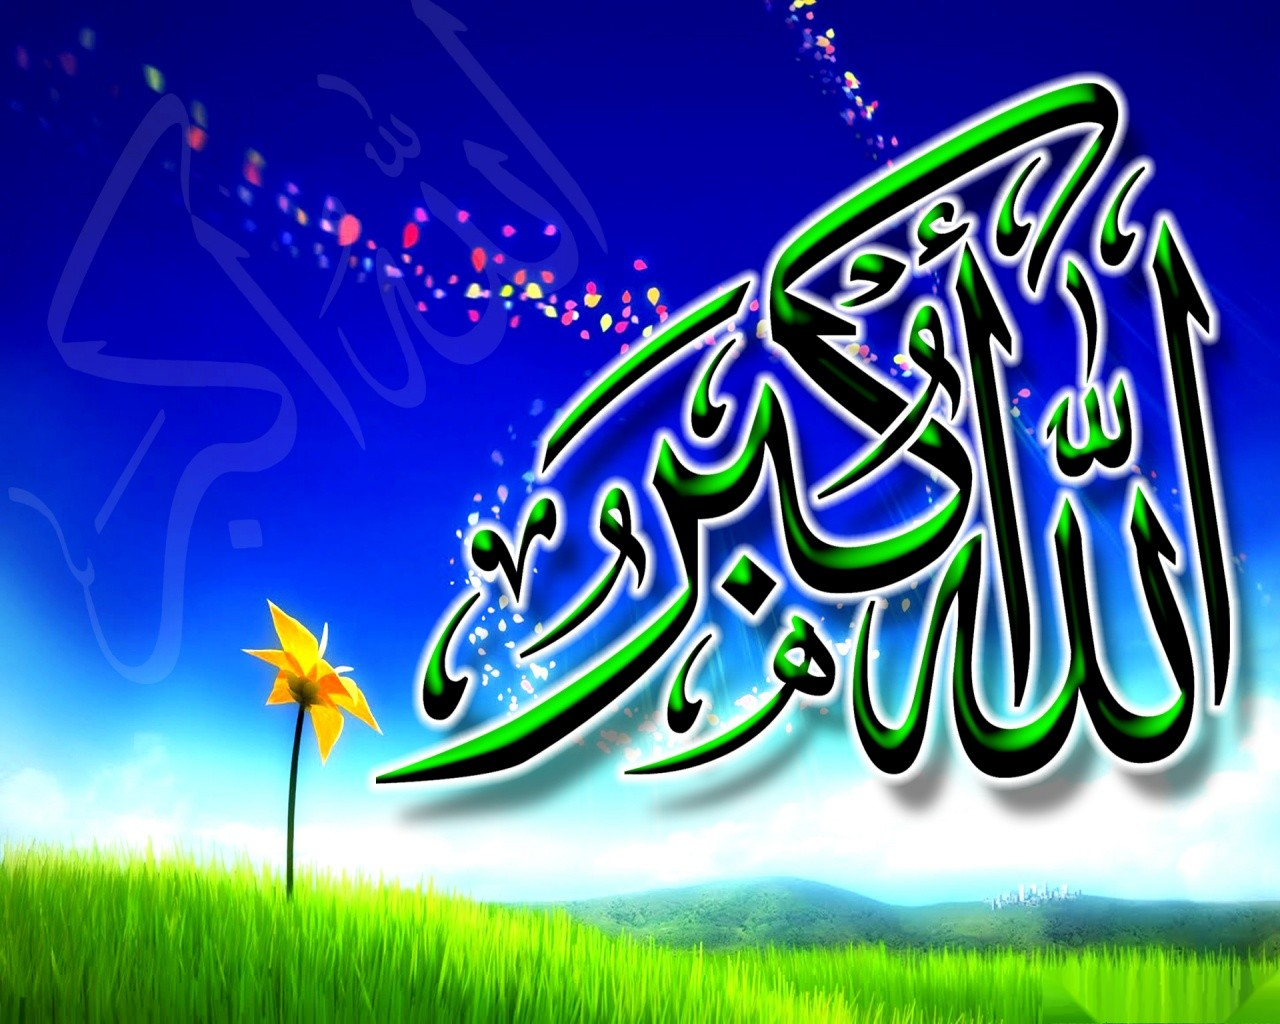 islamic high quality wallpapers new hd natural allah o